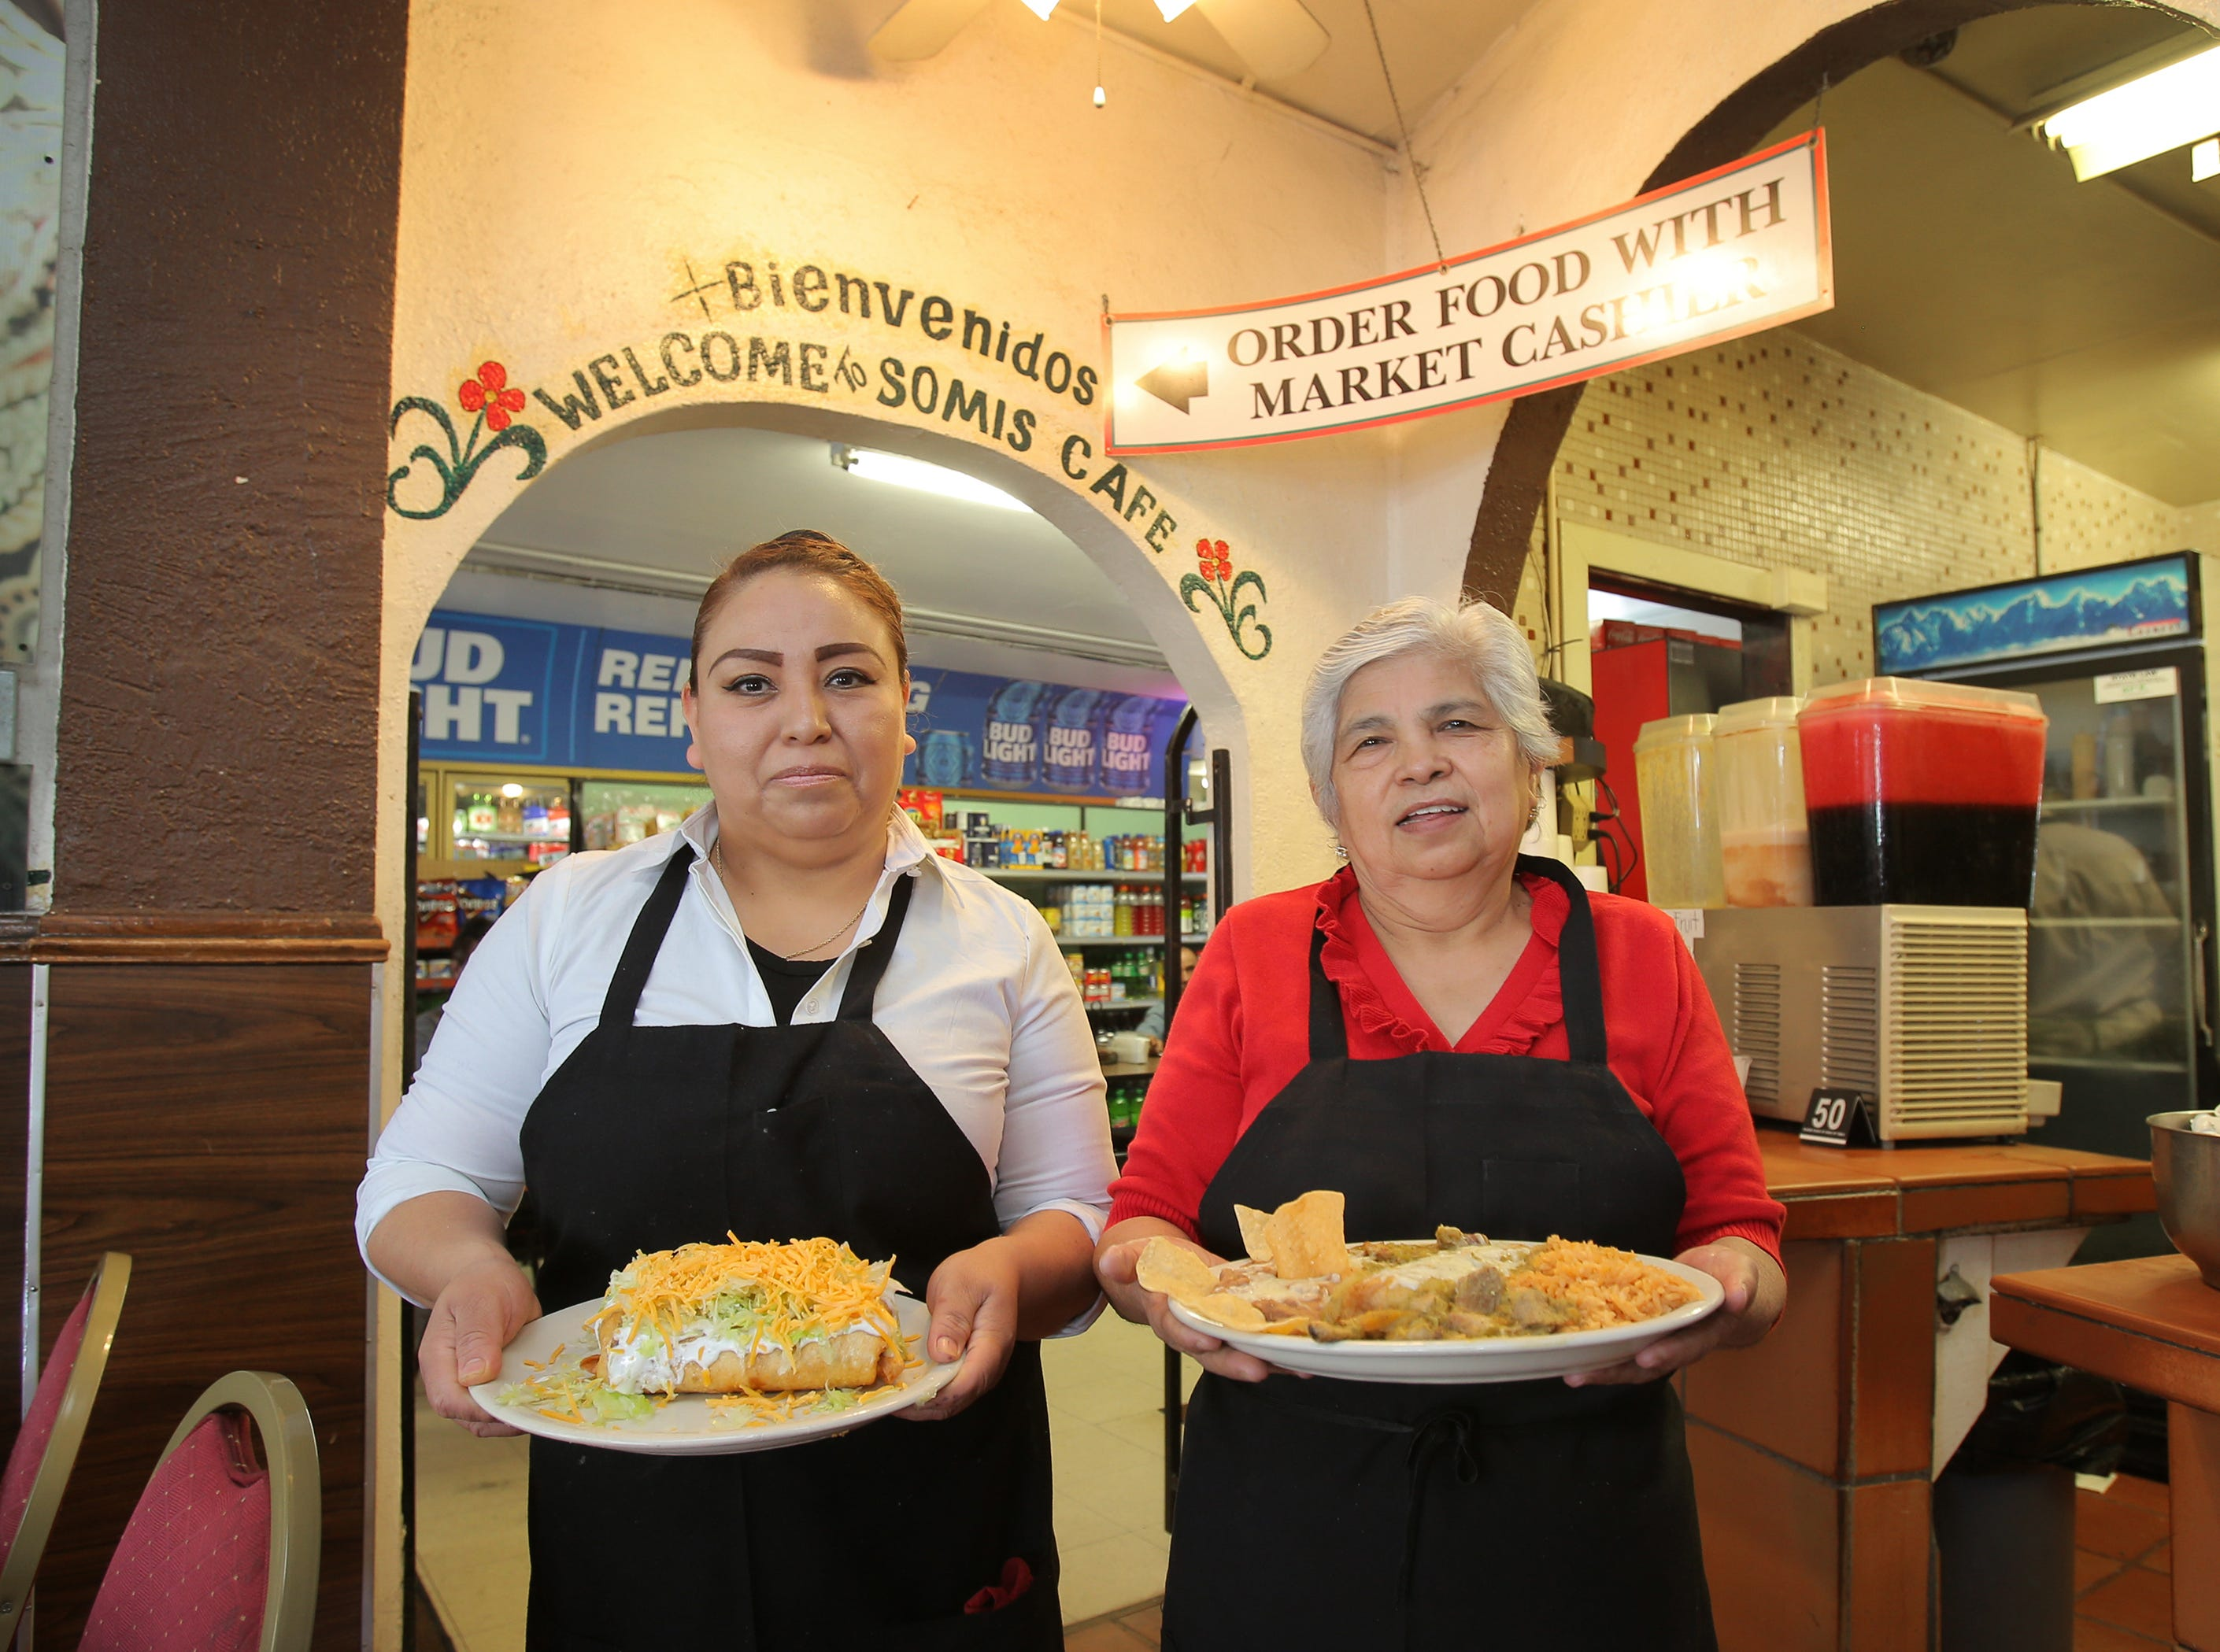 Longtime Somis Café and Market waitresses Angeles Garcia and Maria De La Cruz get ready to serve the café's two popular dishes, a chimichanga and a chile verde plate. Garcia has been working there 21 years while De La Cruz has been there for 38 years. The Somis Café and Market first opened in 1974 and is at 3319 Somis Road.